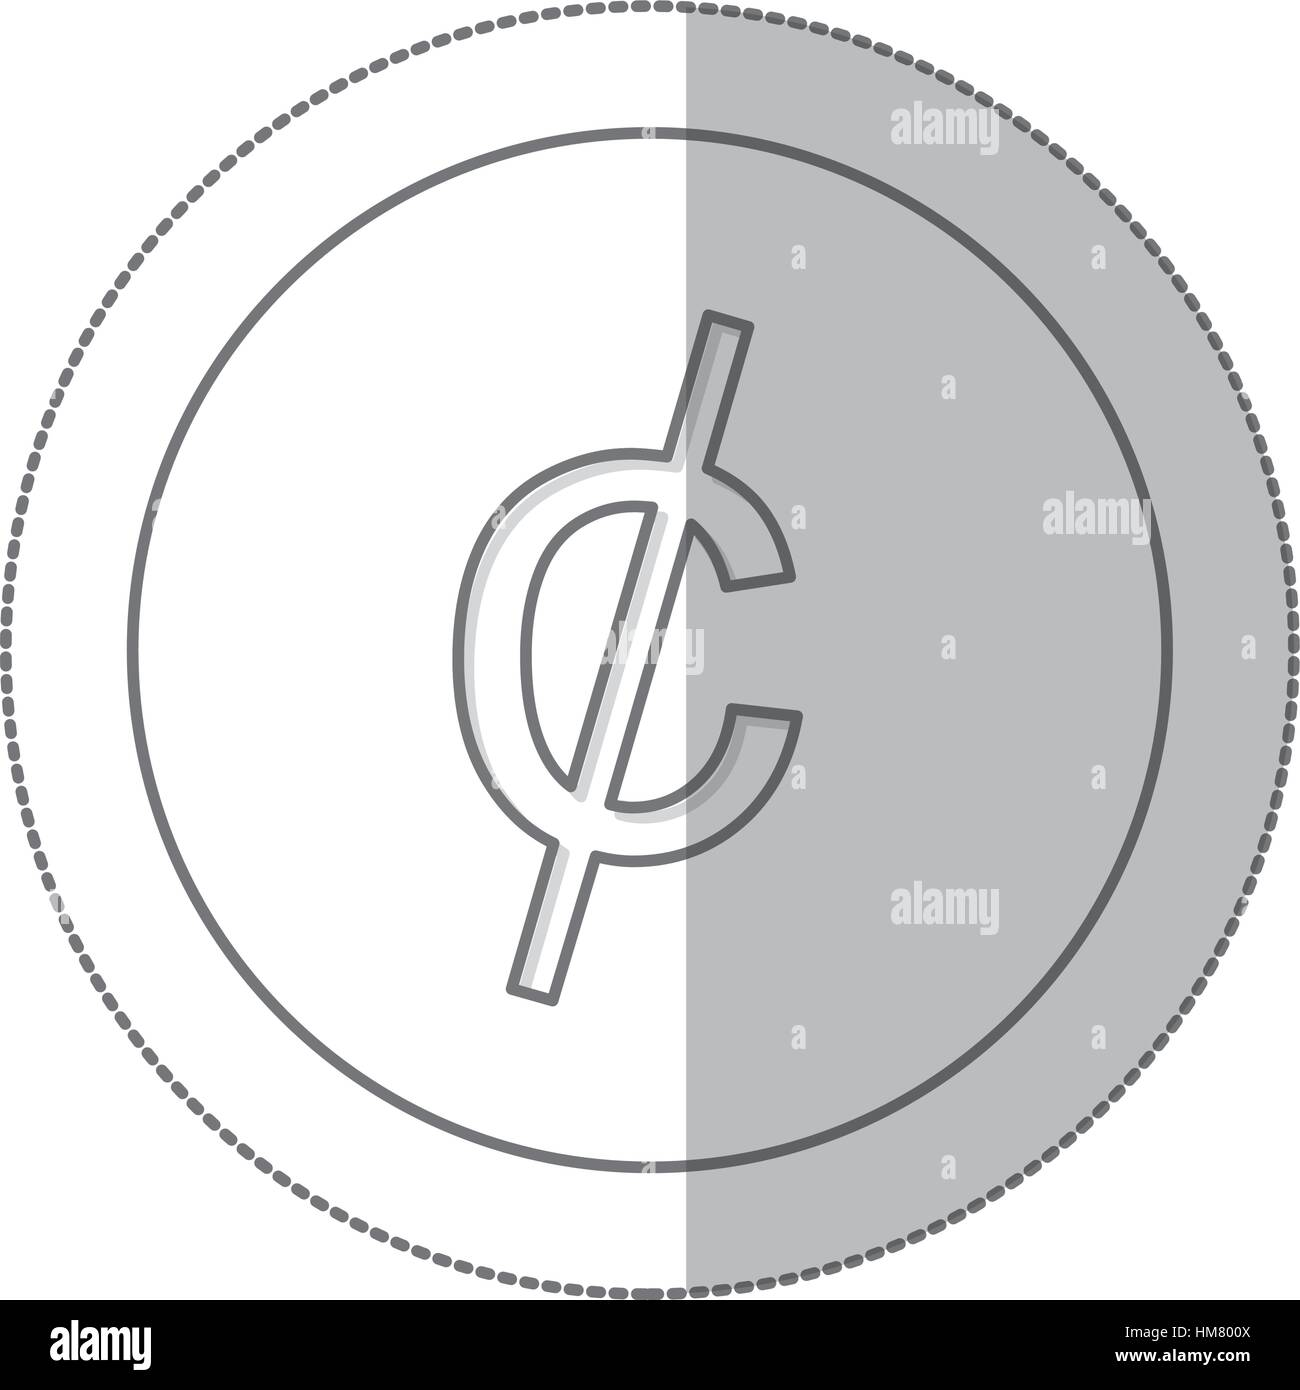 Middle Shadow Monochrome Circle Currency Stock Photos Middle